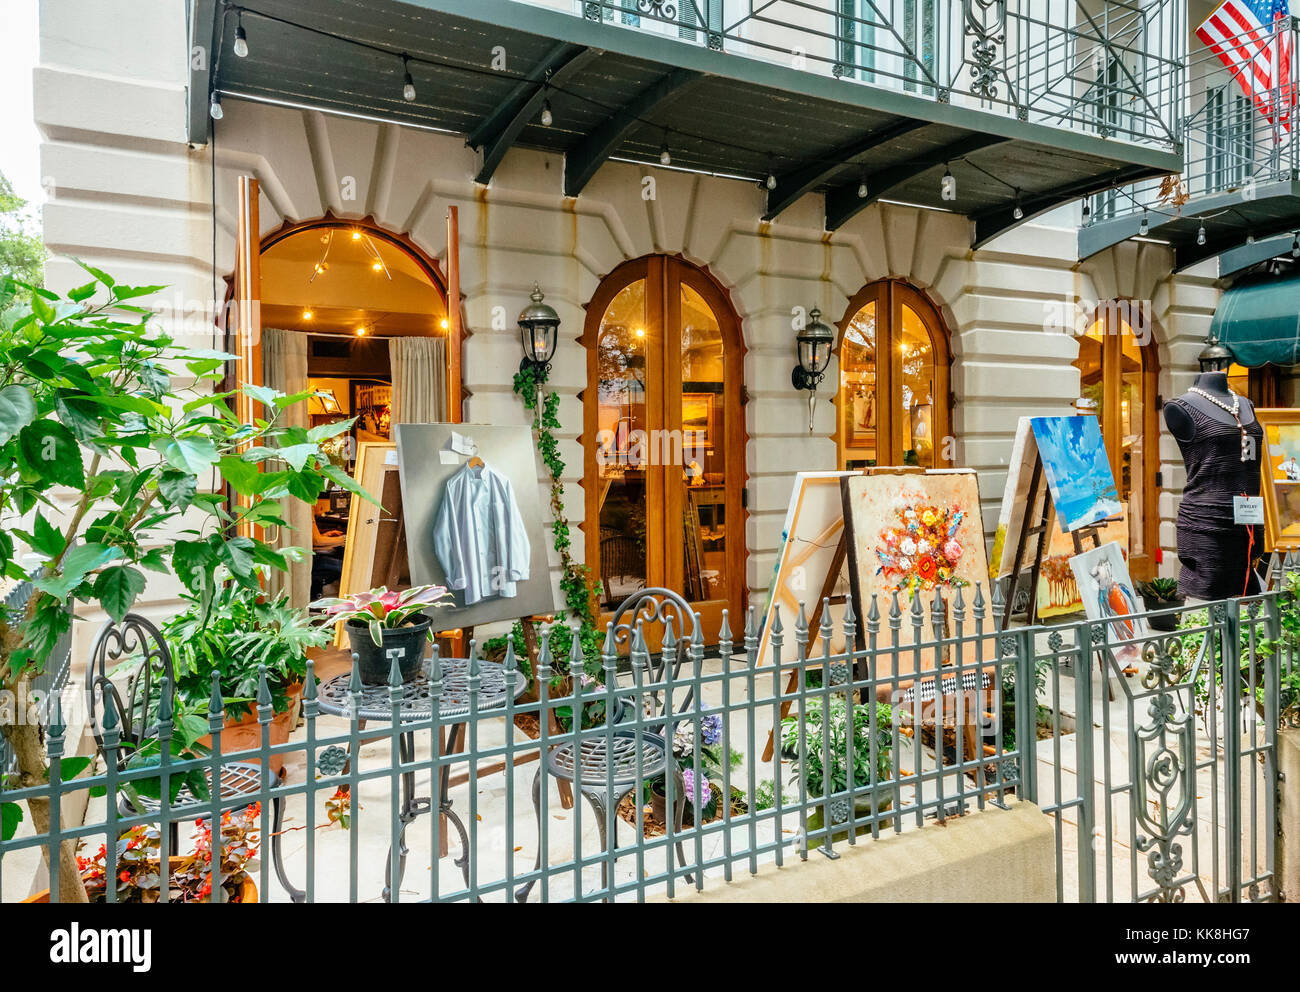 Sidewalk boutique and art gallery with outside display in Seaside Florida, USA, a beach resort town. - Stock Image